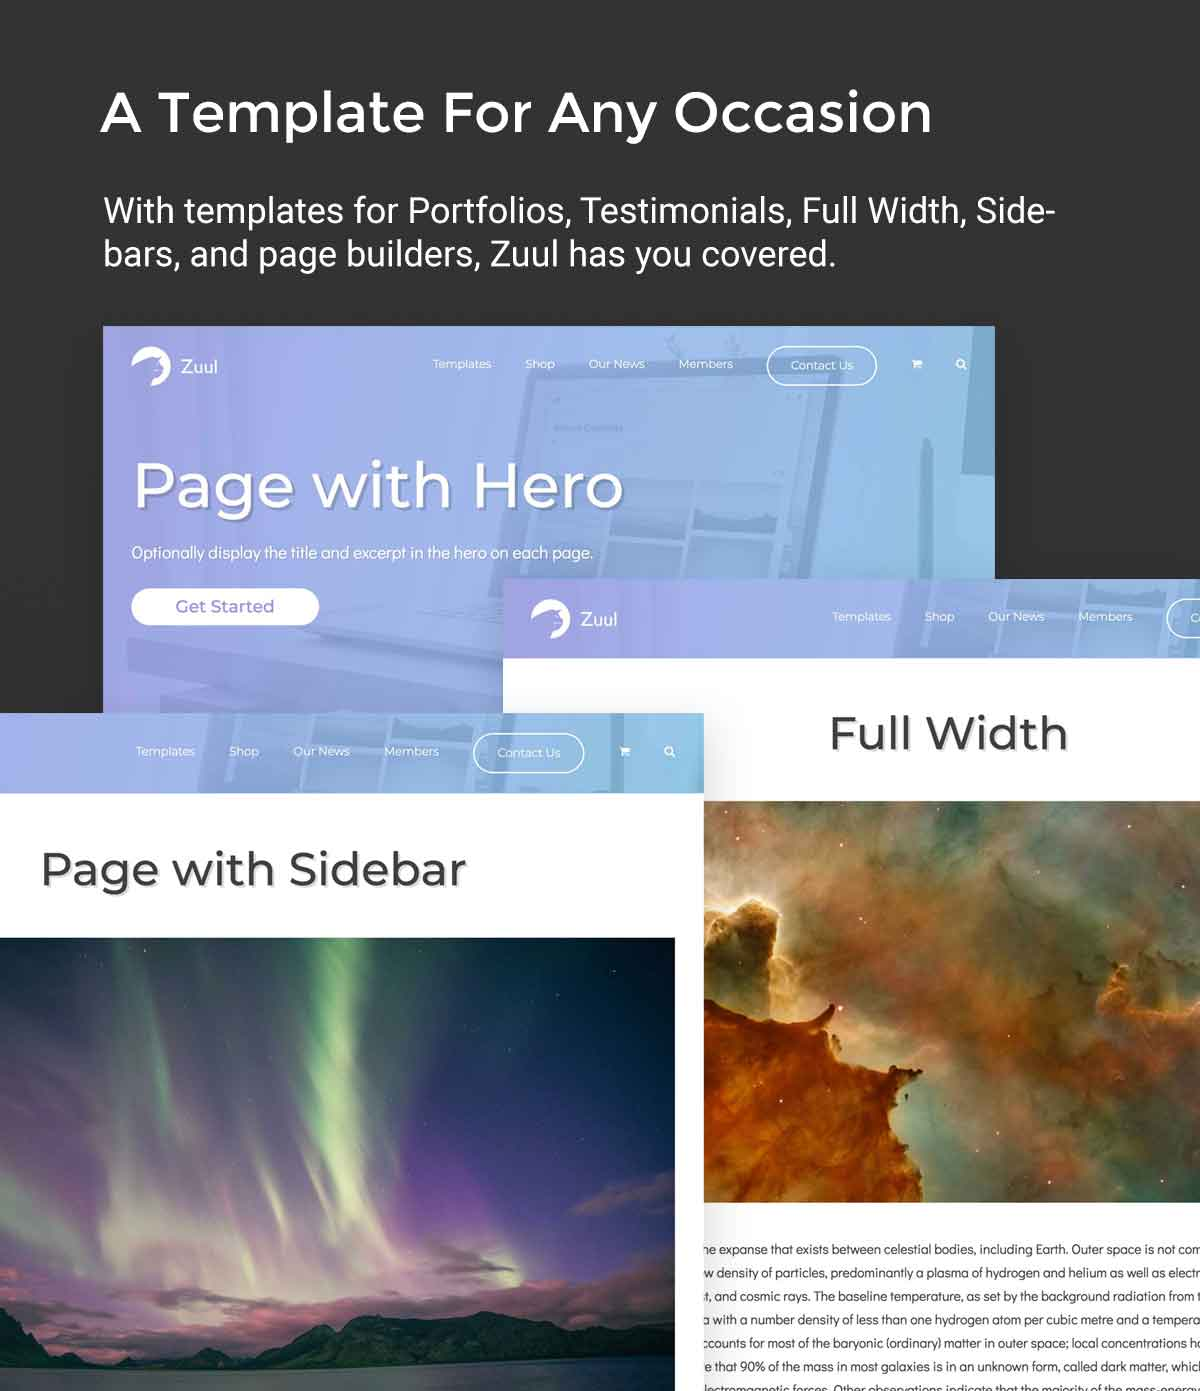 Zuul Pro Page Templates